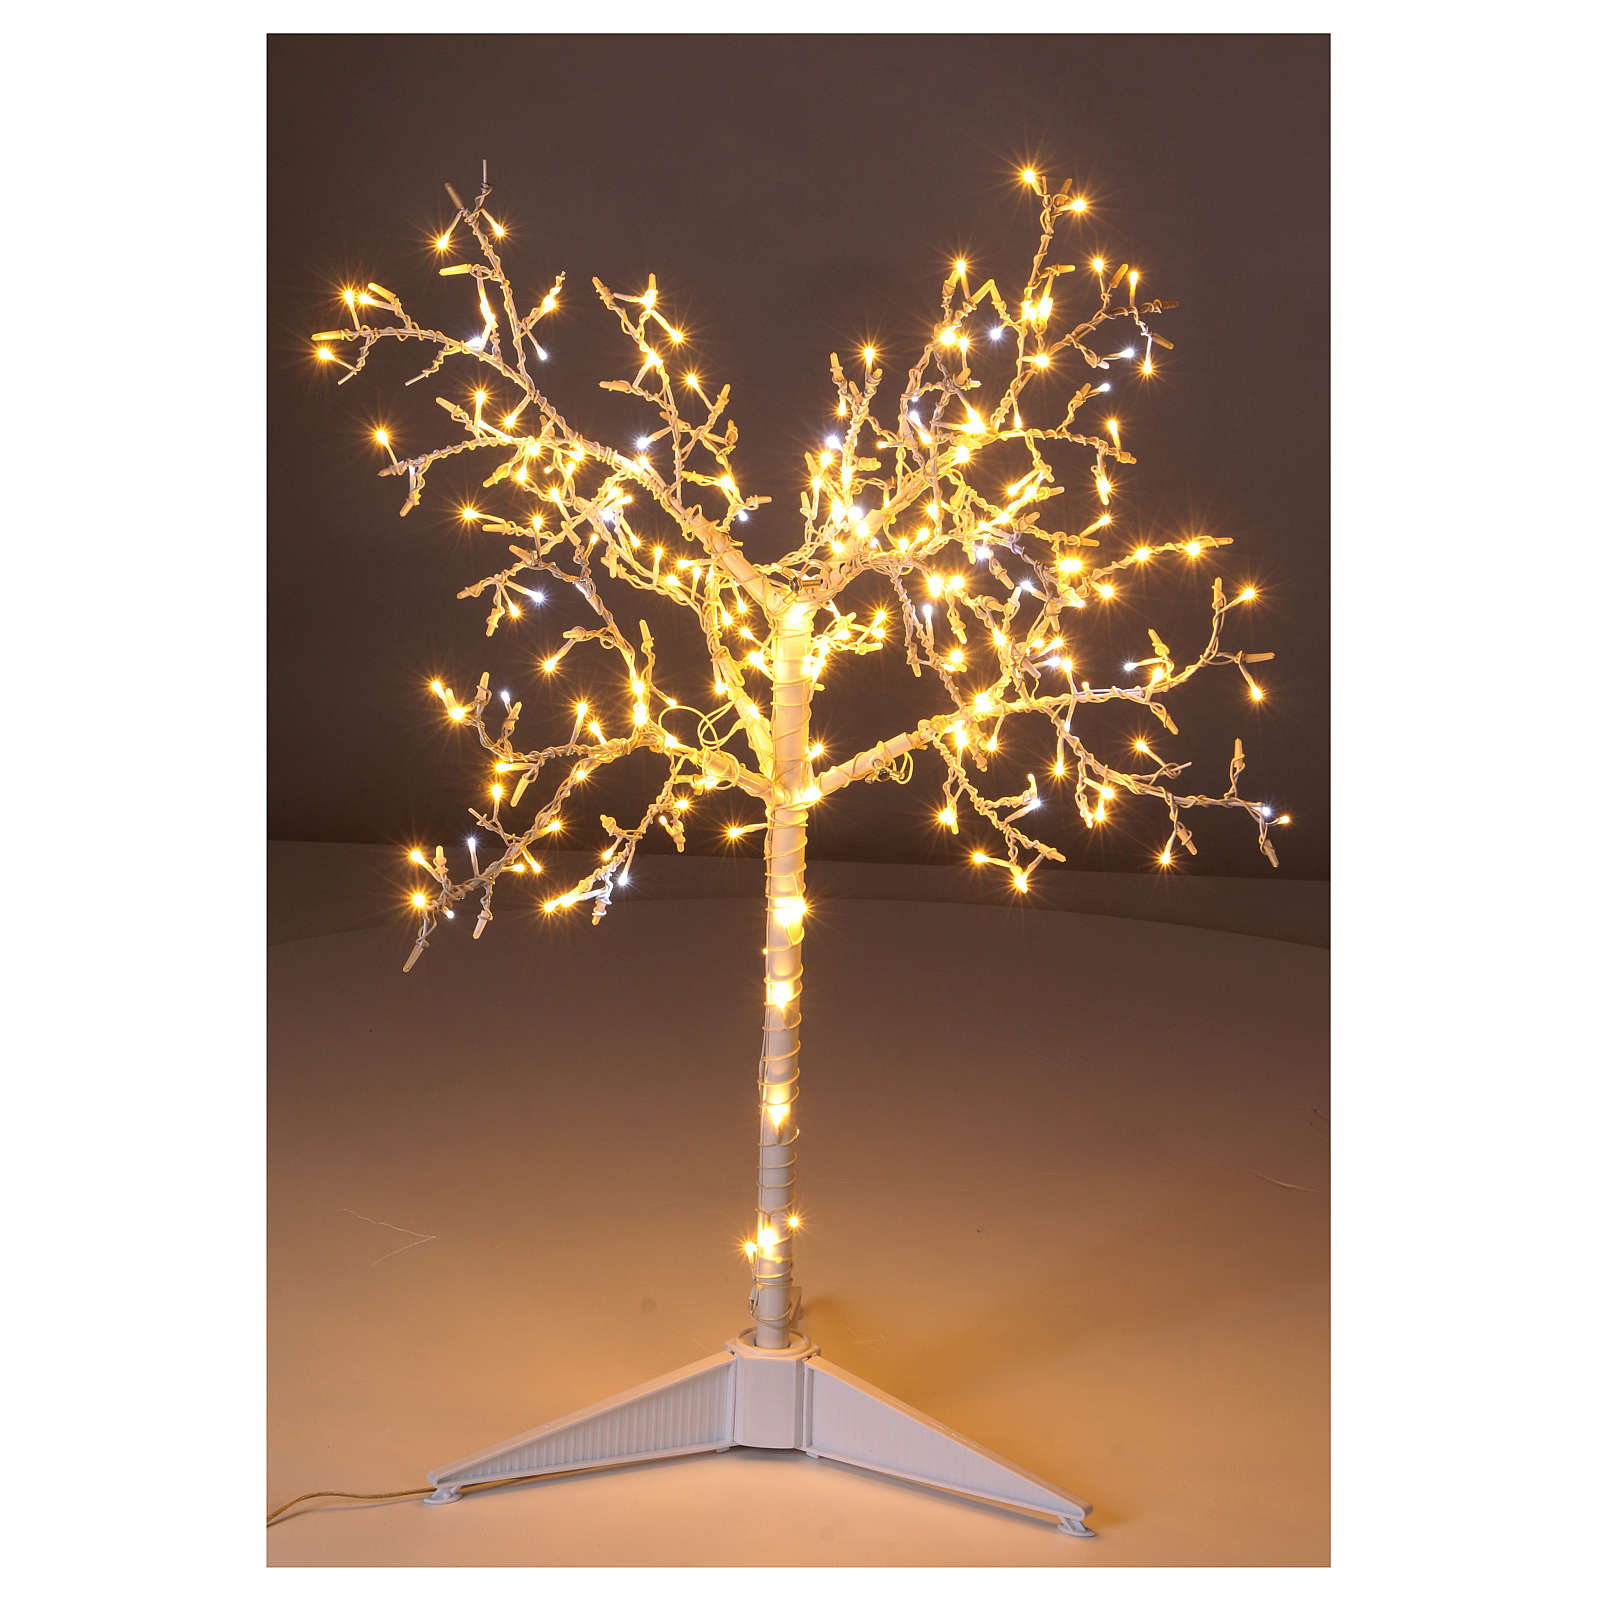 Christmas Tree With Lights.Metal Christmas Tree With Lights 90 Cm 210 Leds Warm And Cold White Outdoor